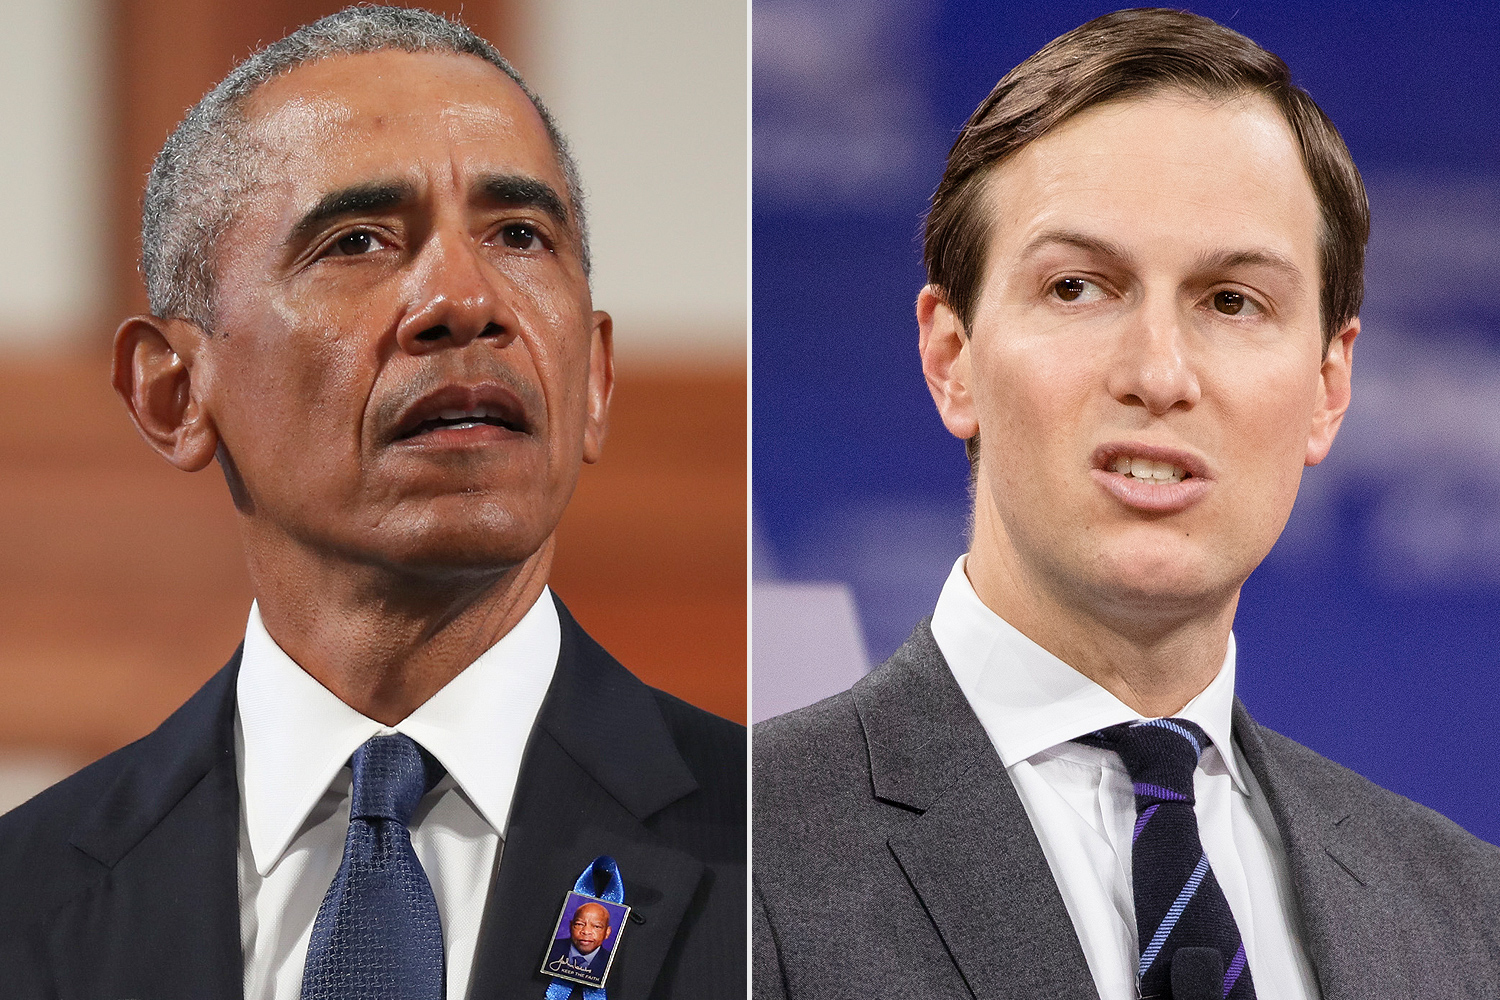 Barack Obama, Jared Kushner